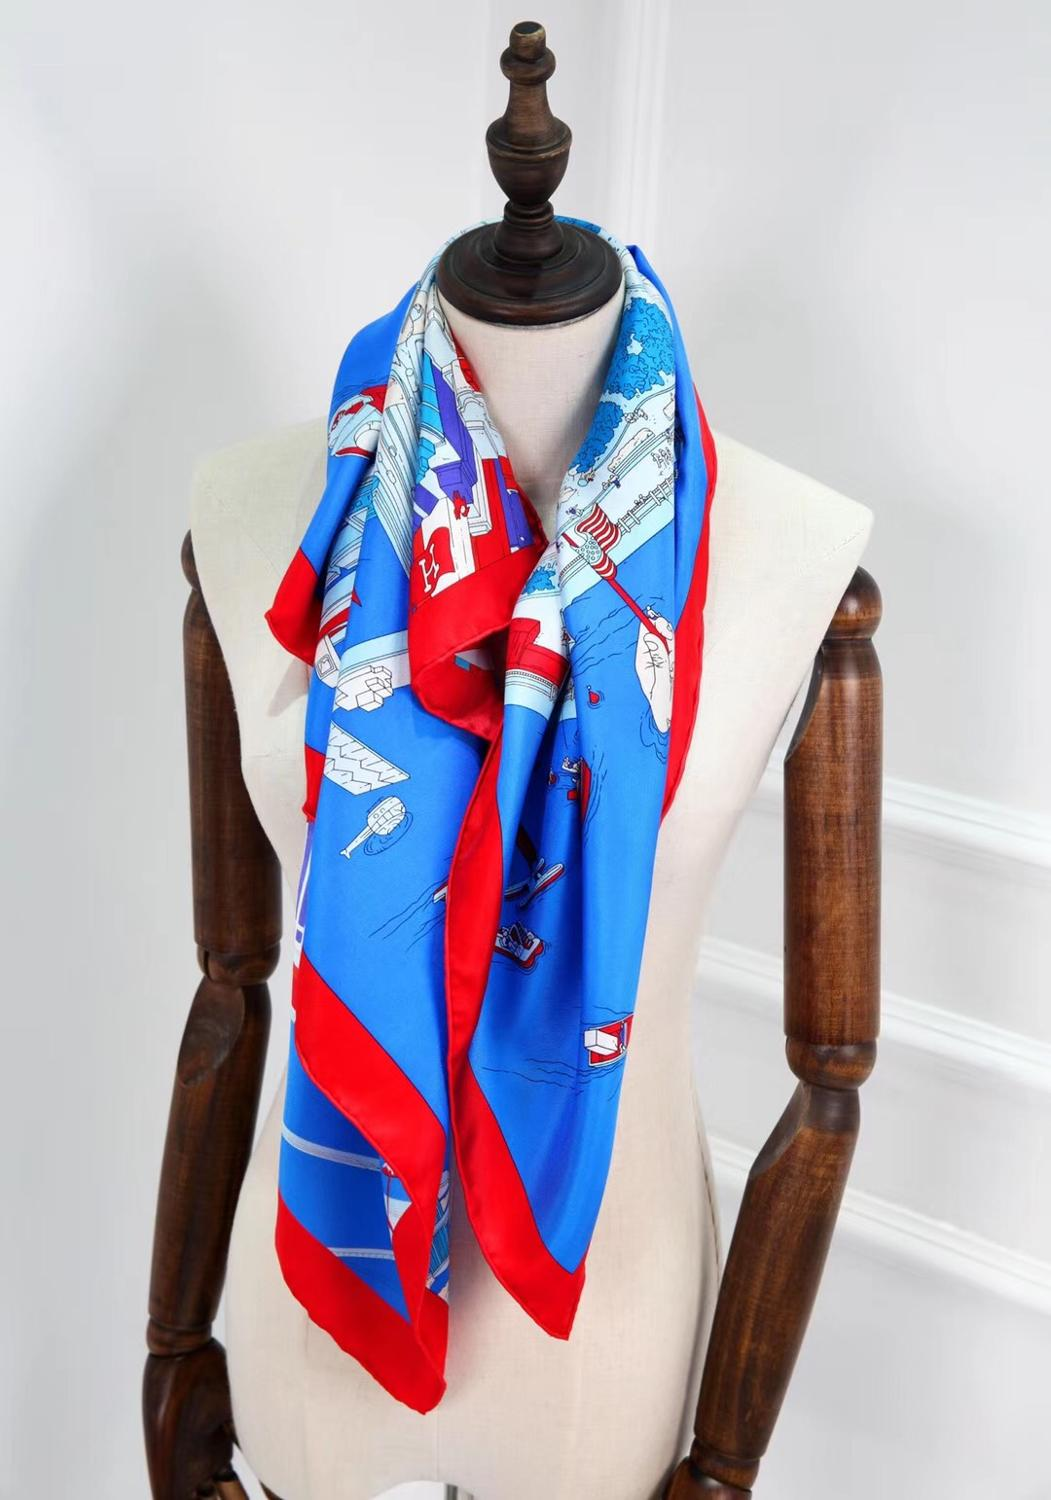 2020 New Arrival Fashion  Brand Classic Colorful 100% Silk Scarf 90*90 Cm Square Shawl Twill Wrap For Women Lady  Free Shipping